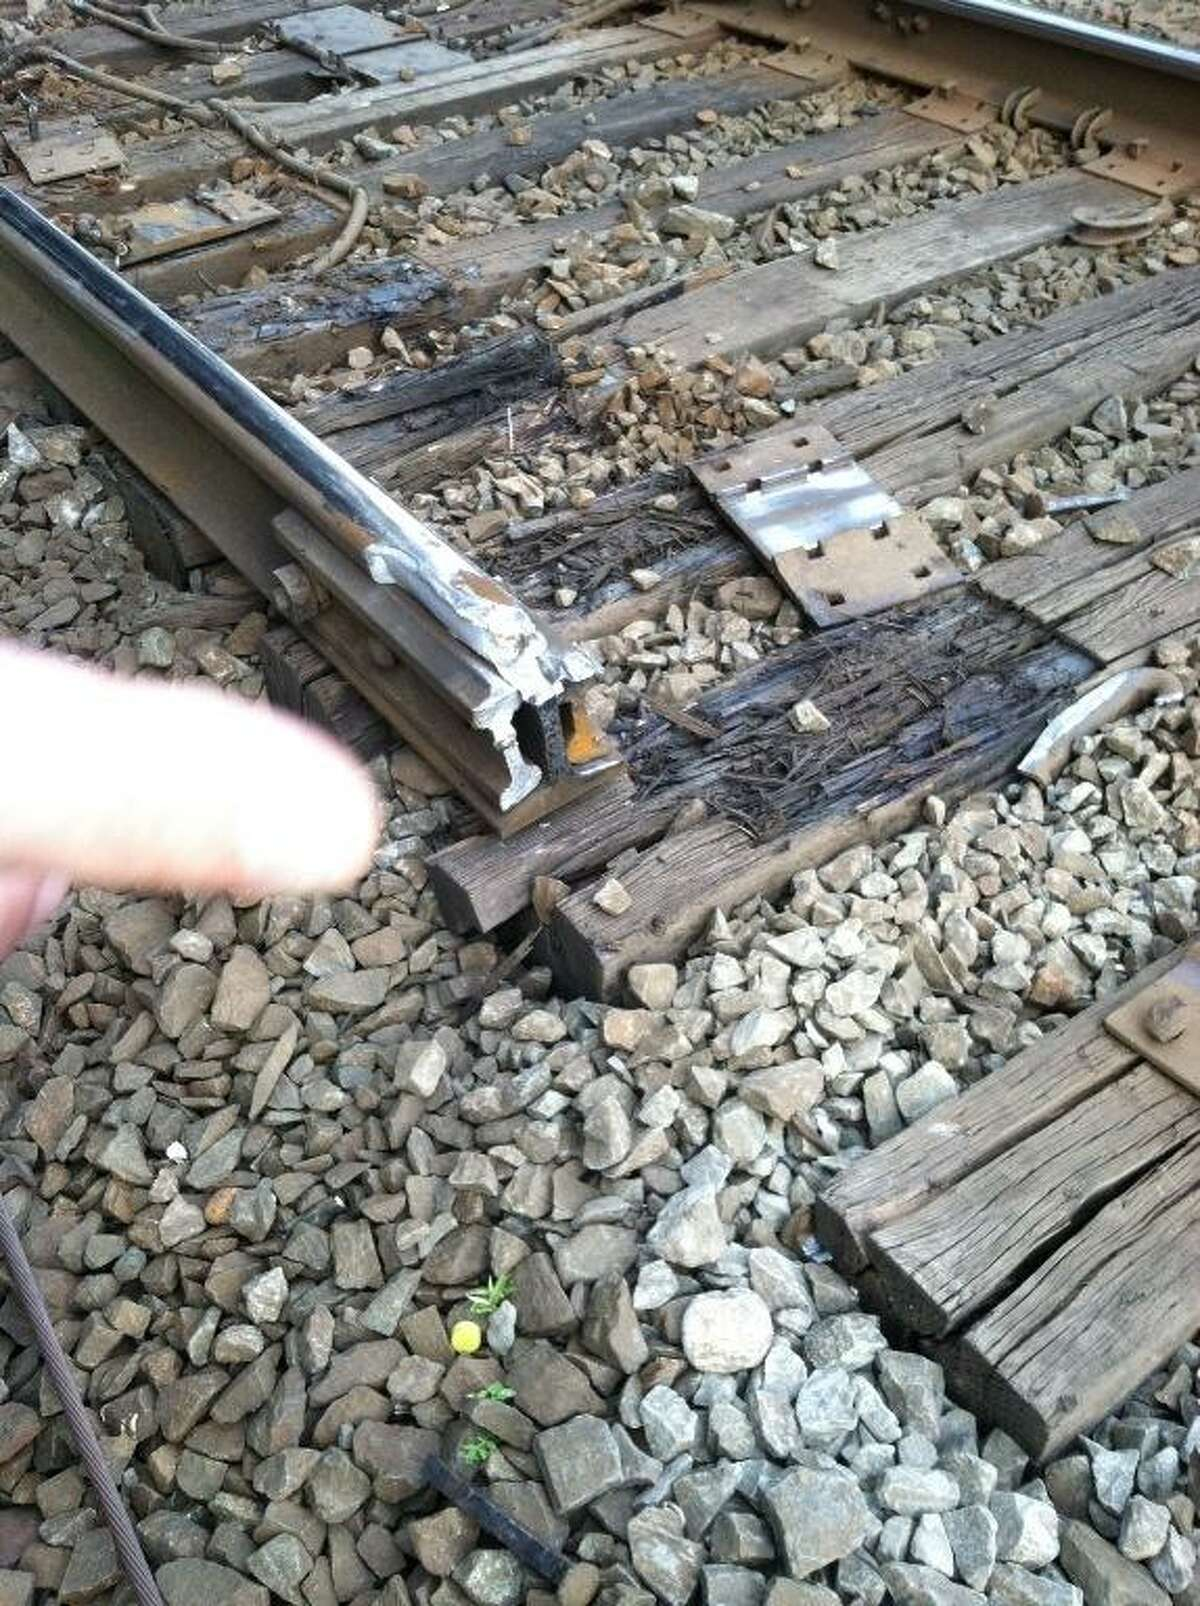 Picture shows joint bars at point of derailment. Photo courtesy George Cahill.